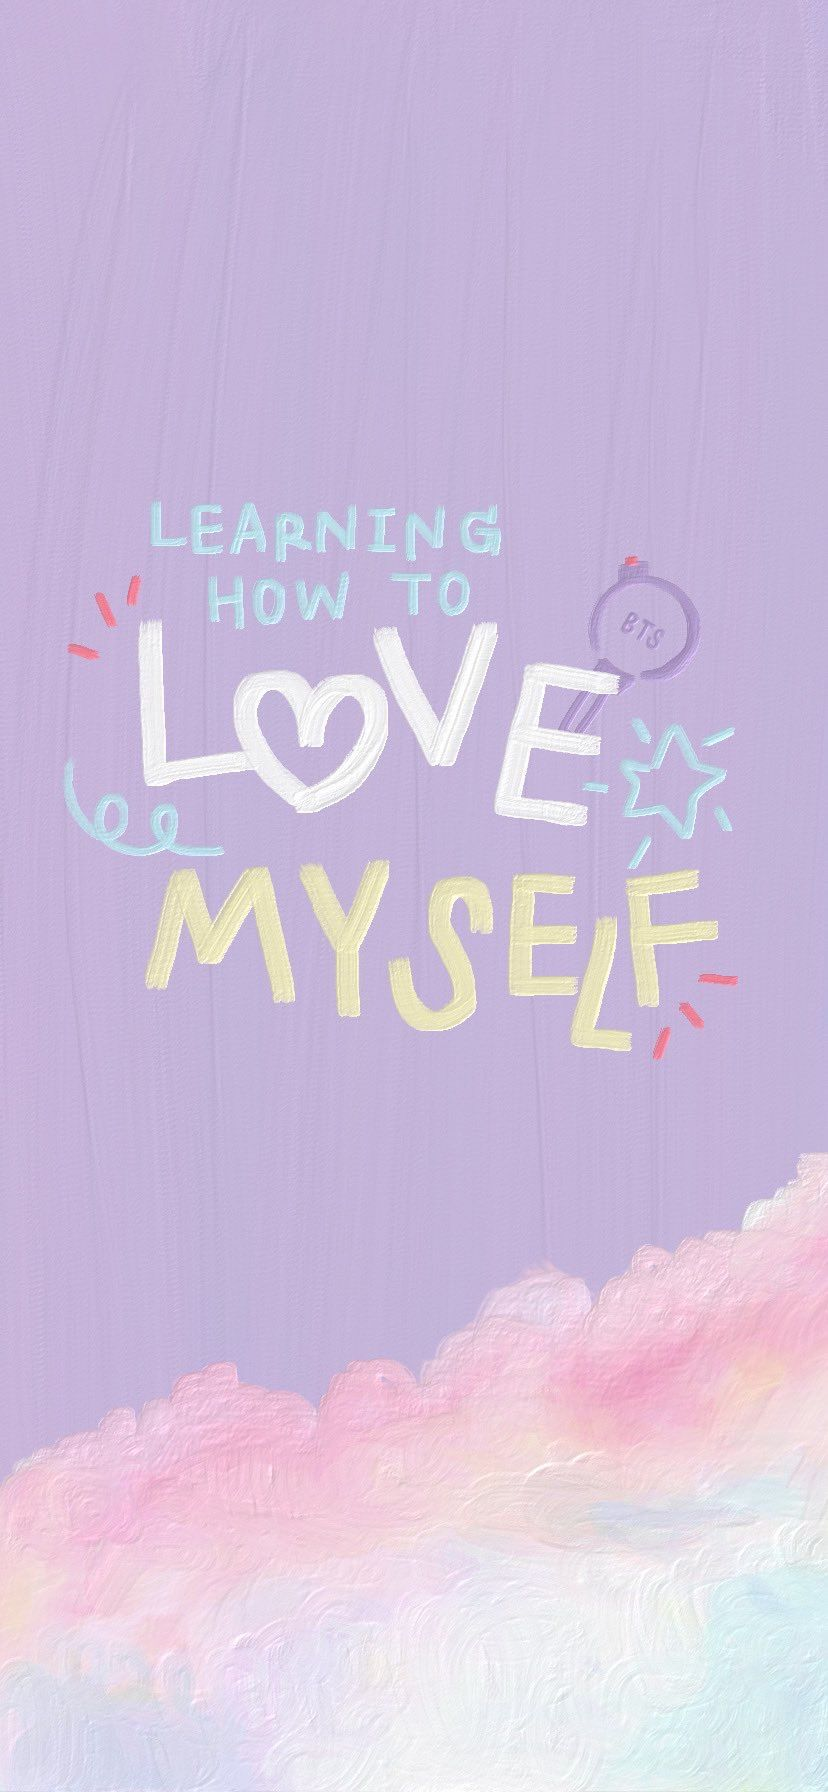 This Is One Of The Best Thoughts I Ve Read And Got Inspired Let S Hope To Be More And More Wallpaper Ponsel Desain Pamflet Ungu Pastel